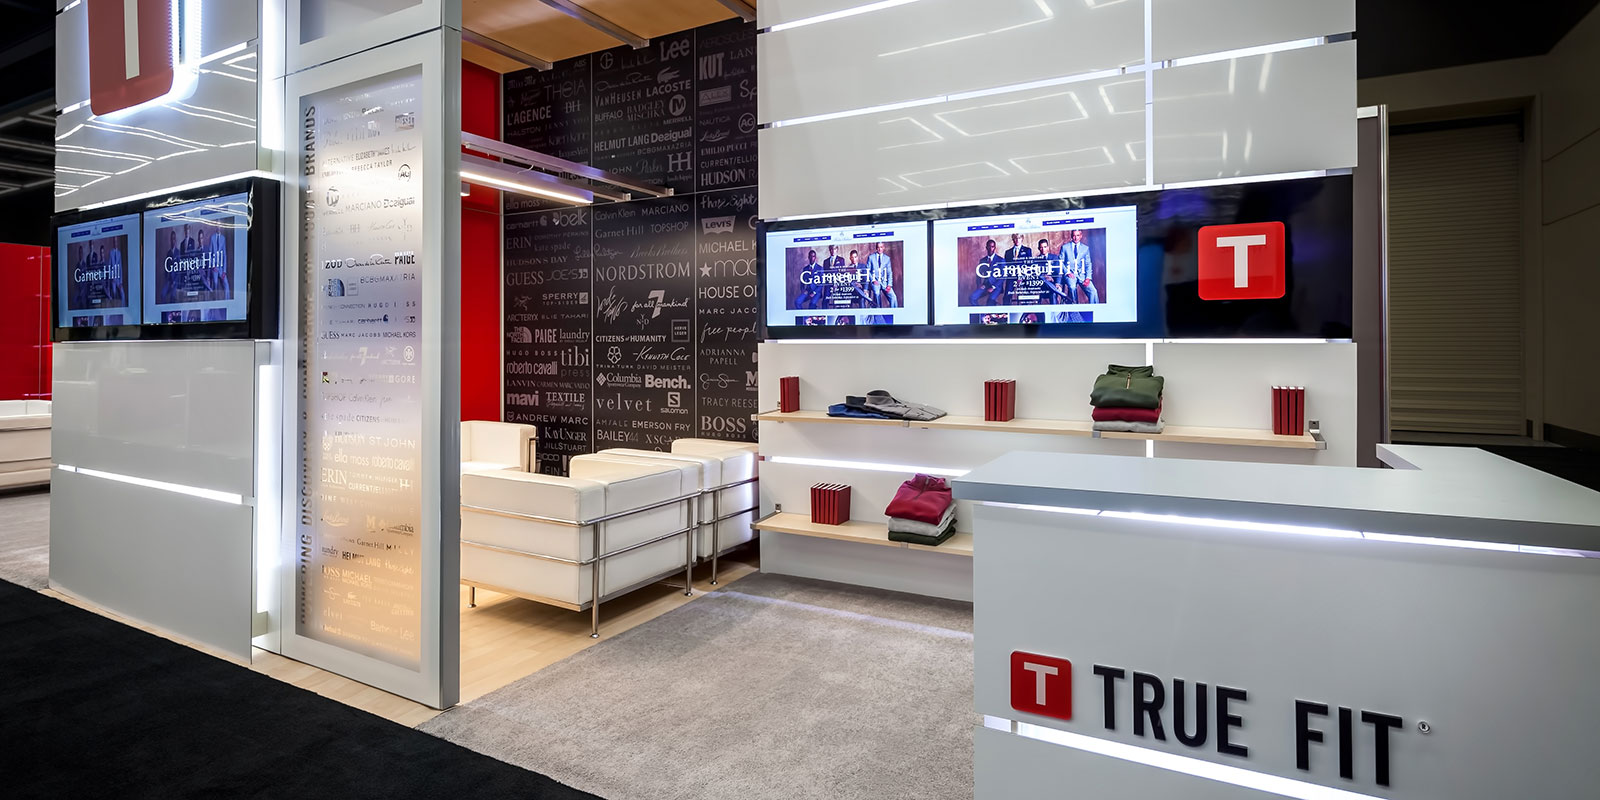 Hill & Partners Rental Branded Environment Trade Show Exhibit for True Fit